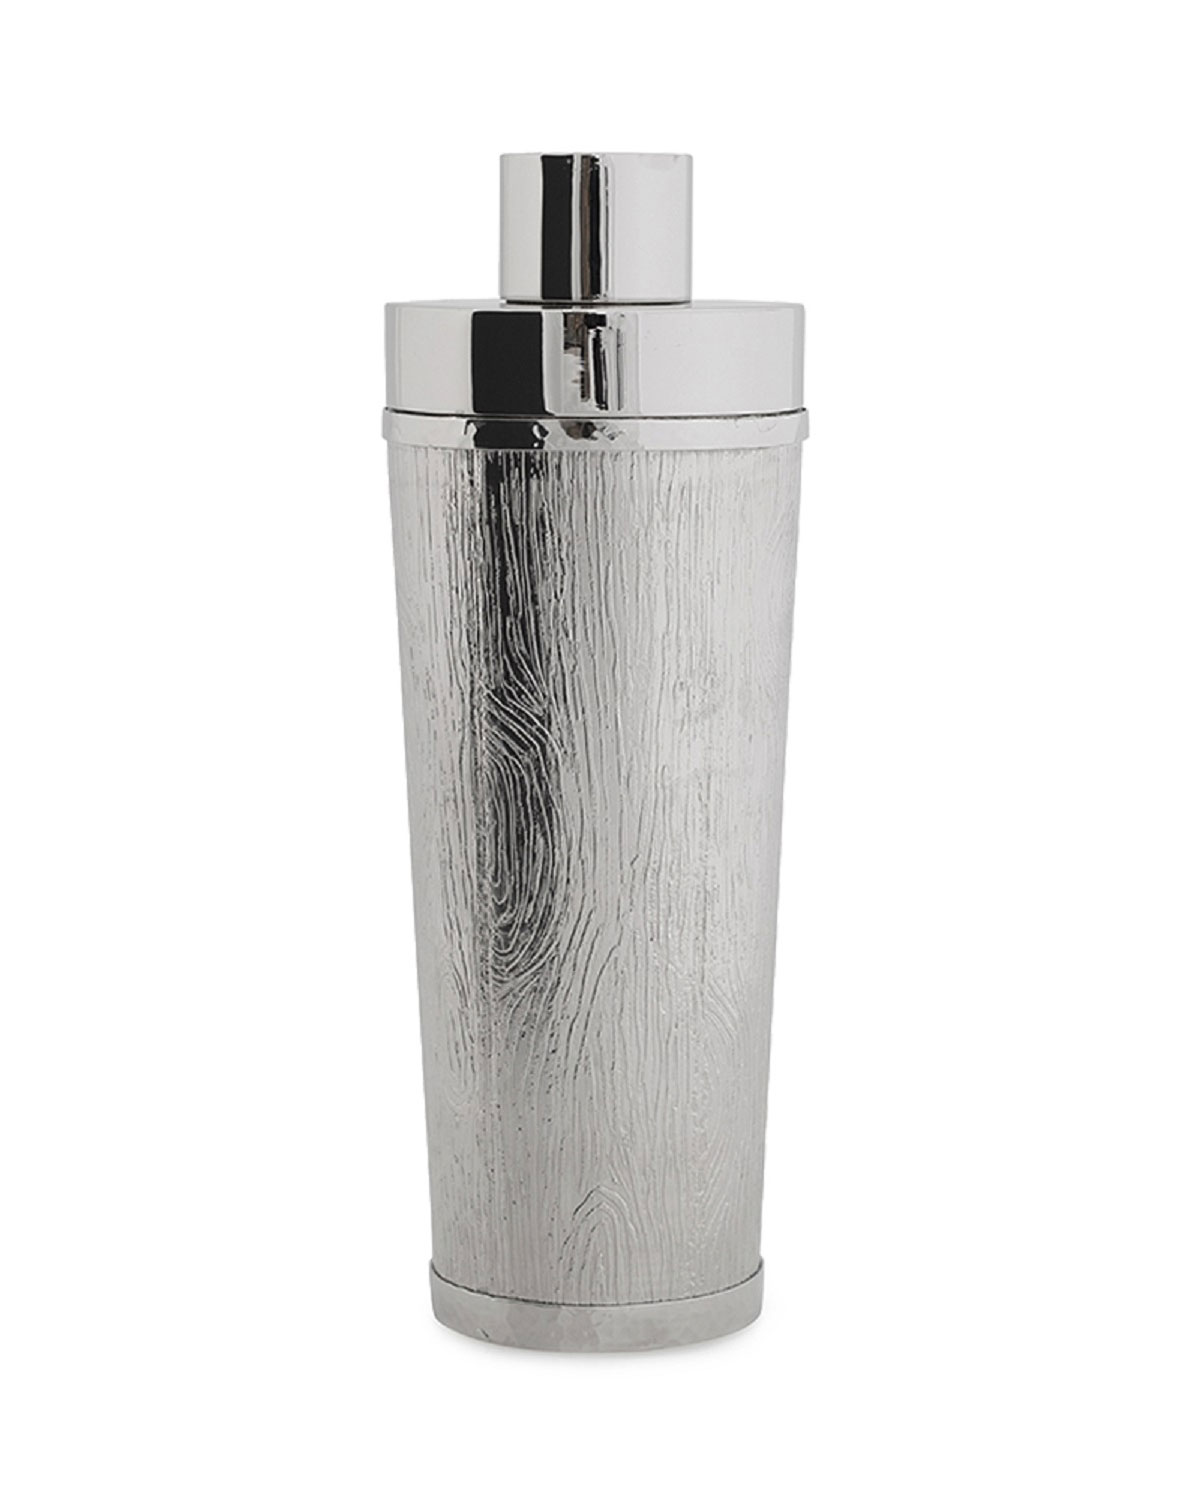 Michael Aram OAK COCKTAIL SHAKER